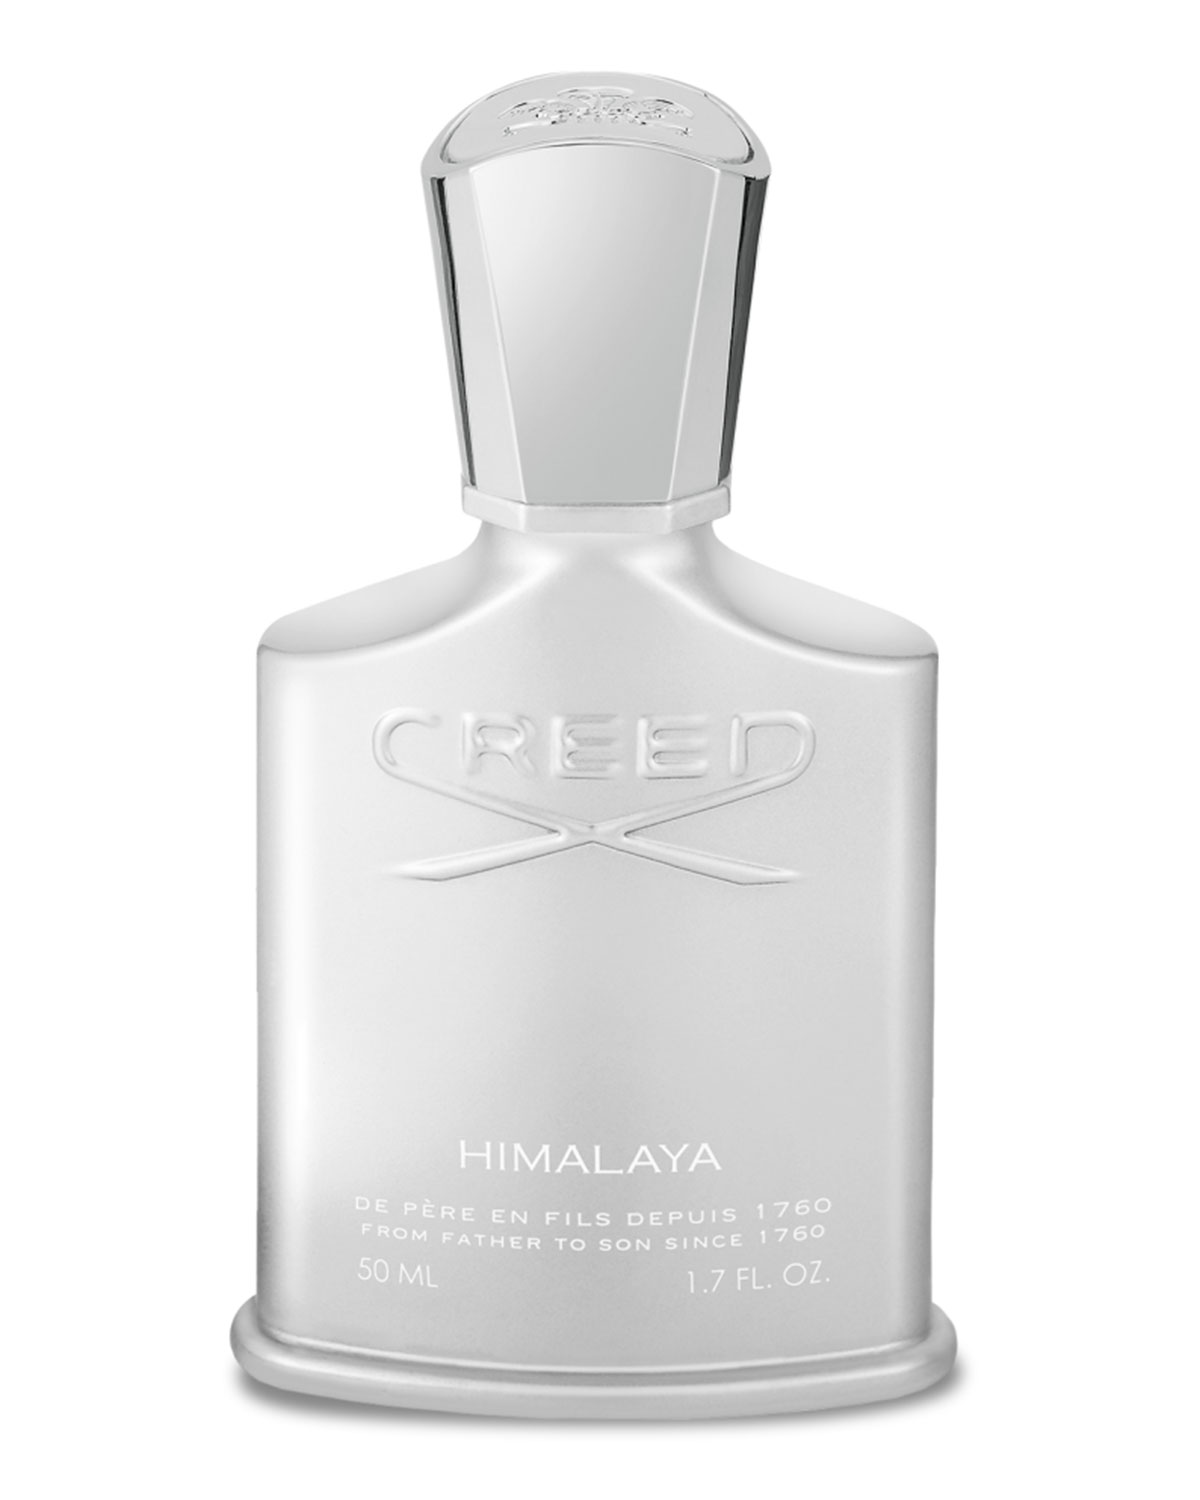 CREED 1.7 oz. Himalaya